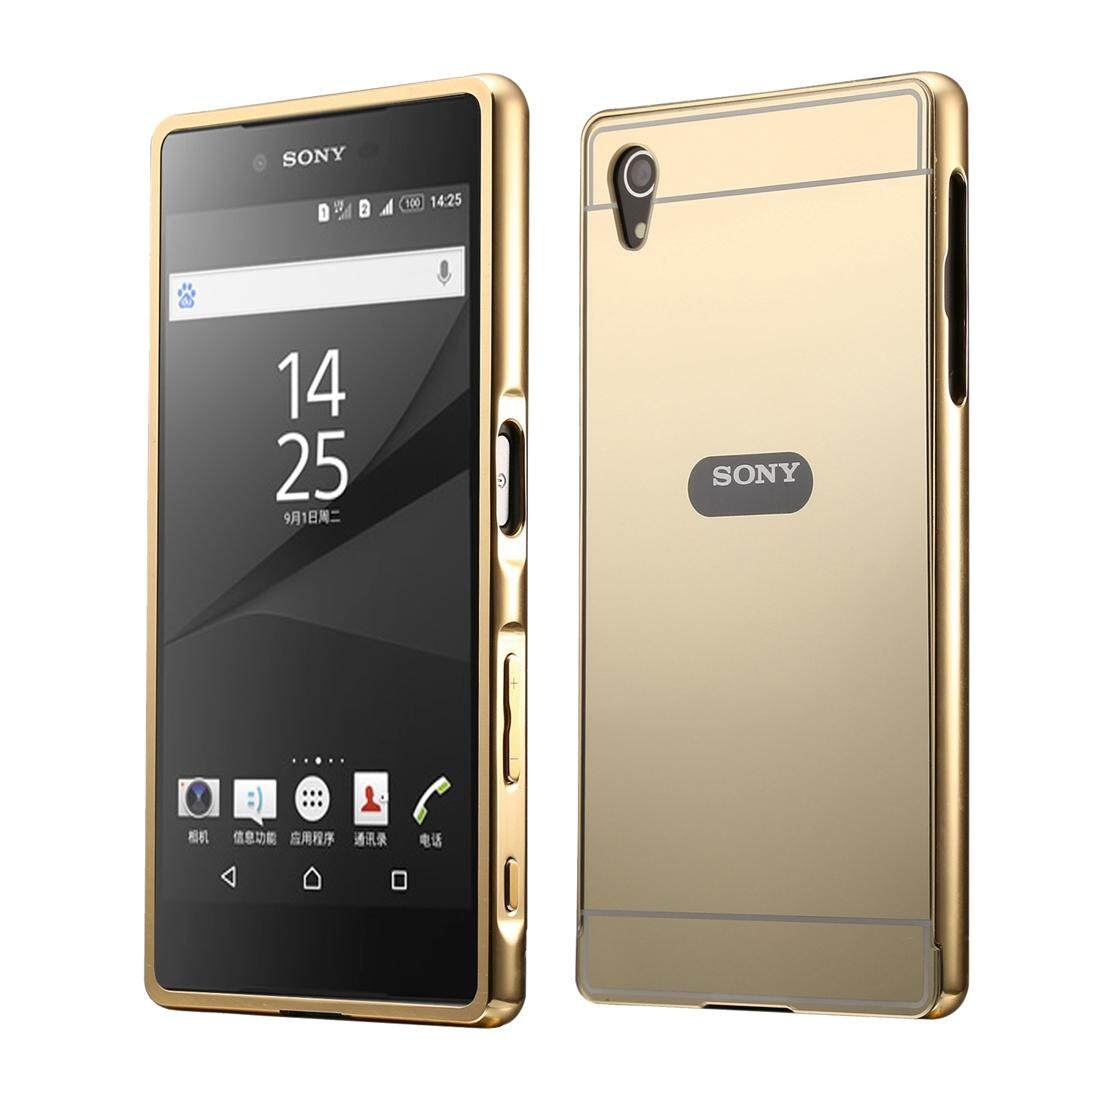 Features For Sony Xperia Z3 Compact D5803 M55w Sliding Metal Bumper Touch Screen D5833 Mini Original Black Frame Case Gold